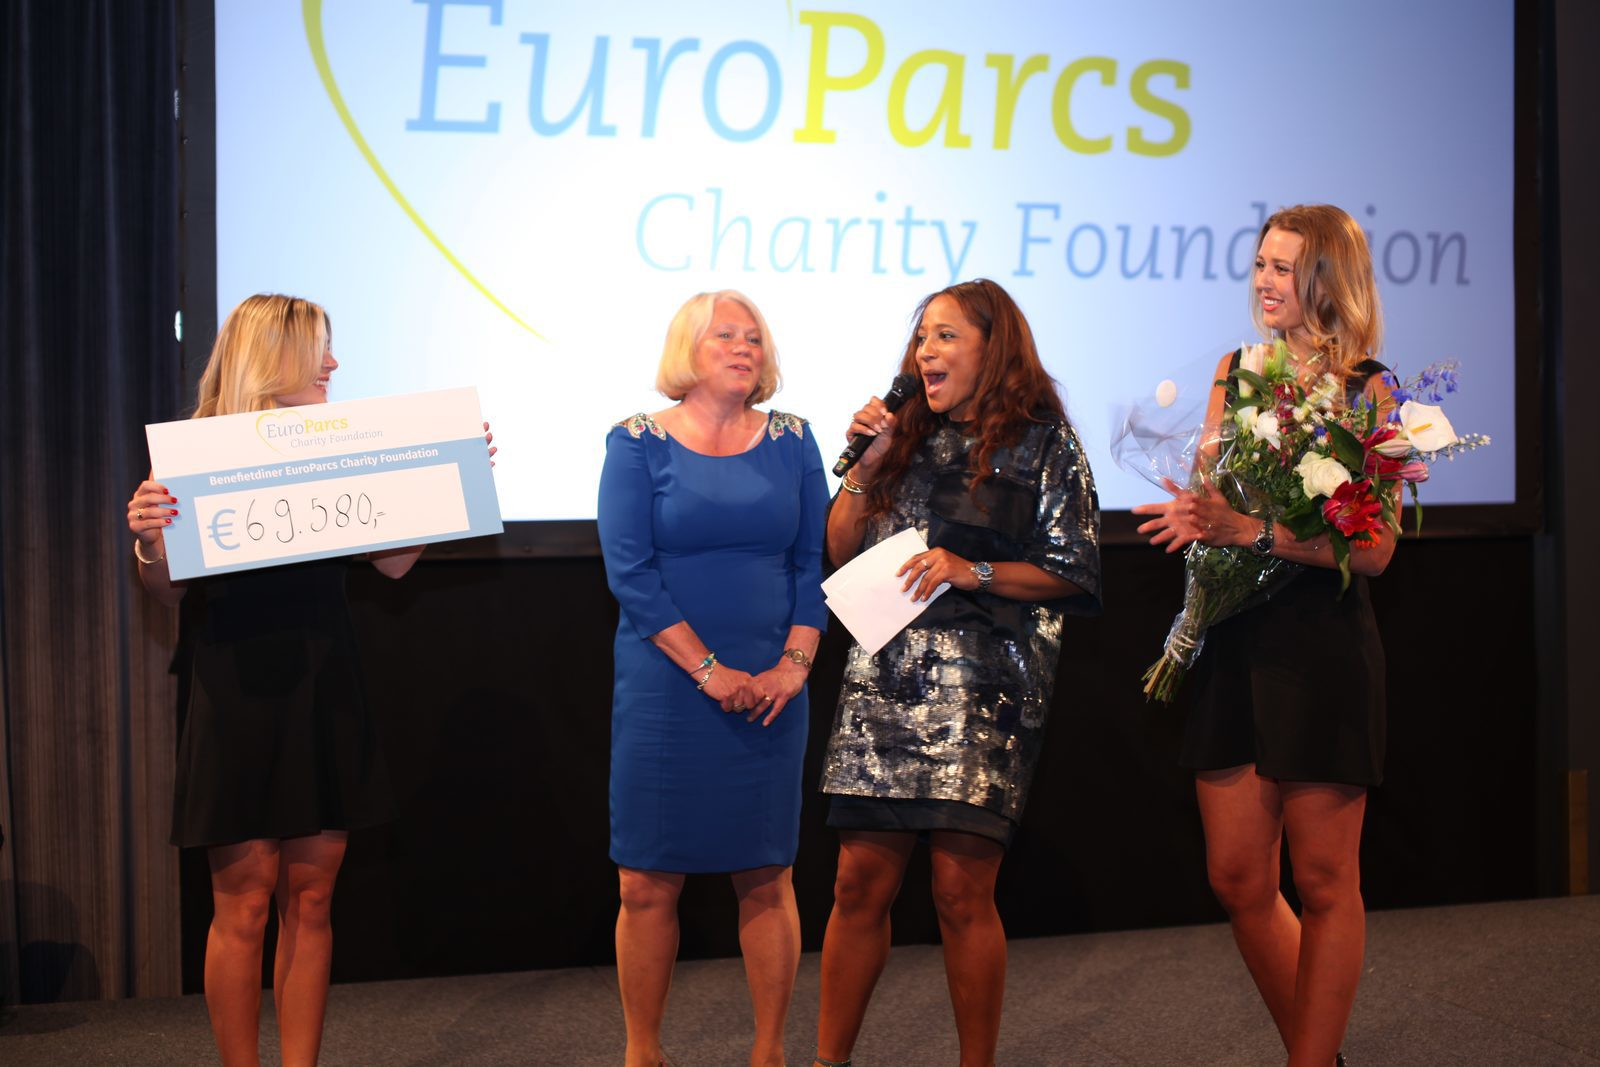 EuroParcs kennt Wert der Europarcs Charity Foundation